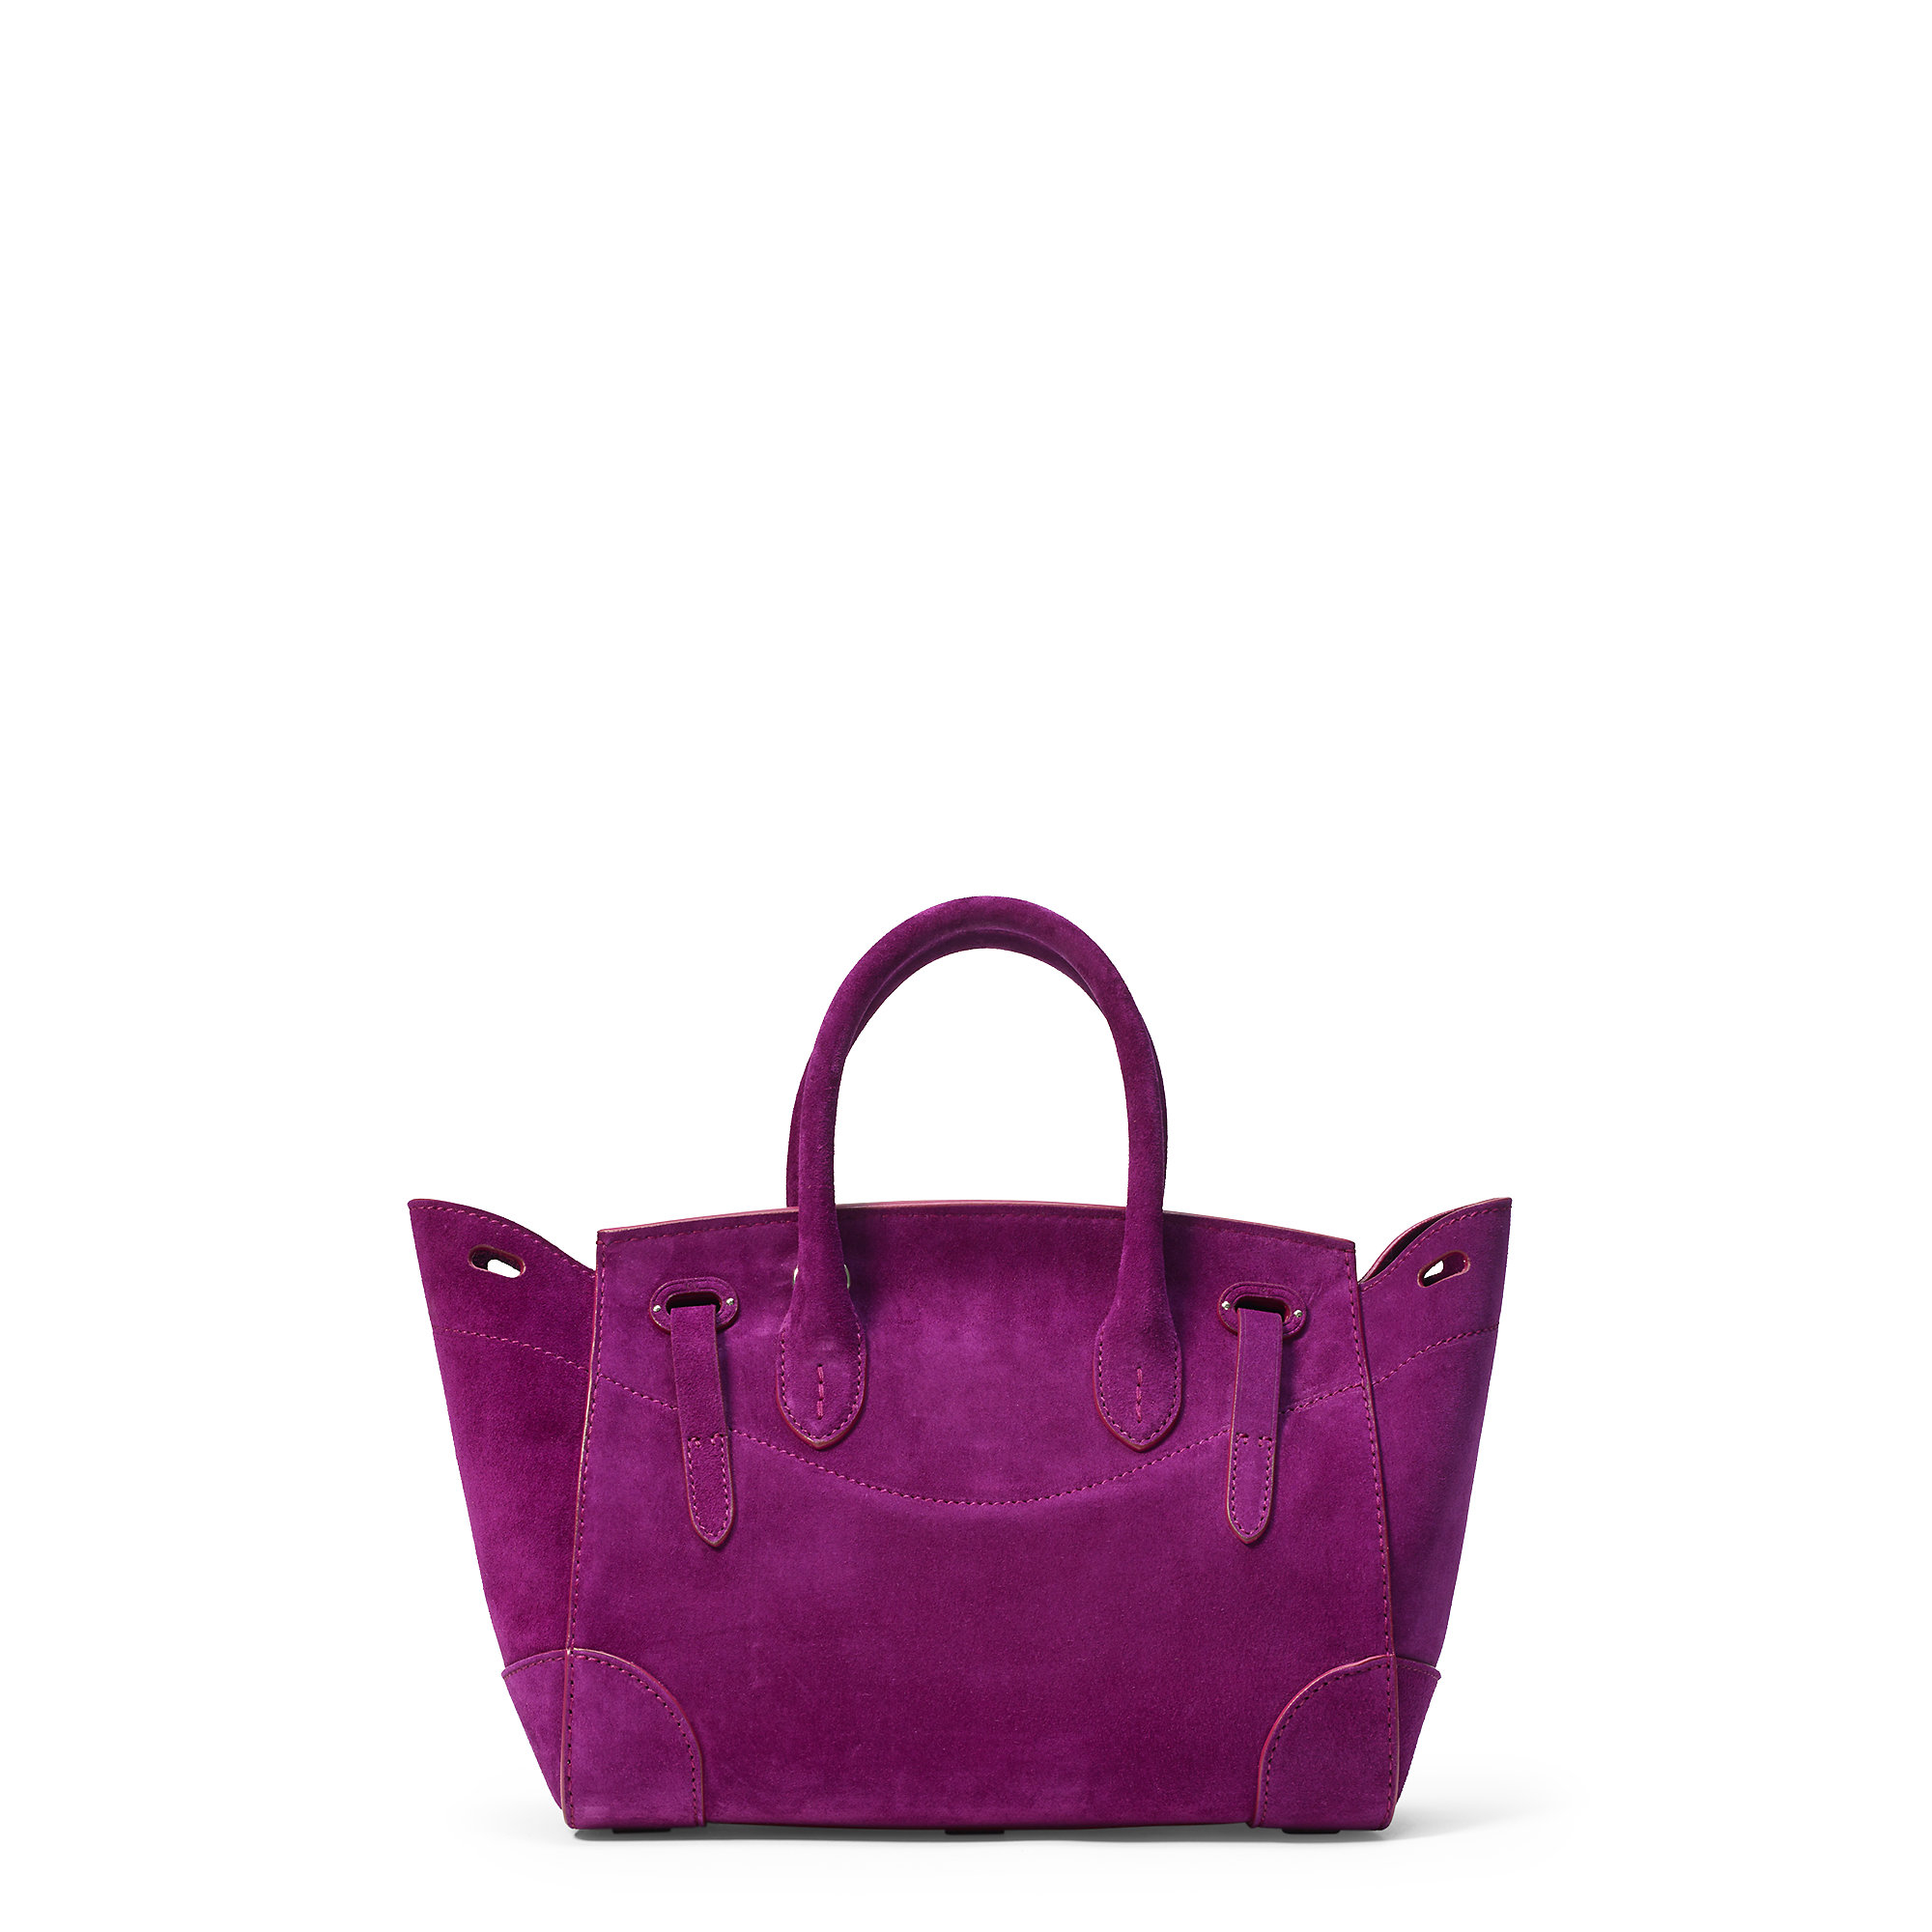 Lyst - Pink Pony Small Suede Soft Ricky Bag in Purple b61d7e2facc30